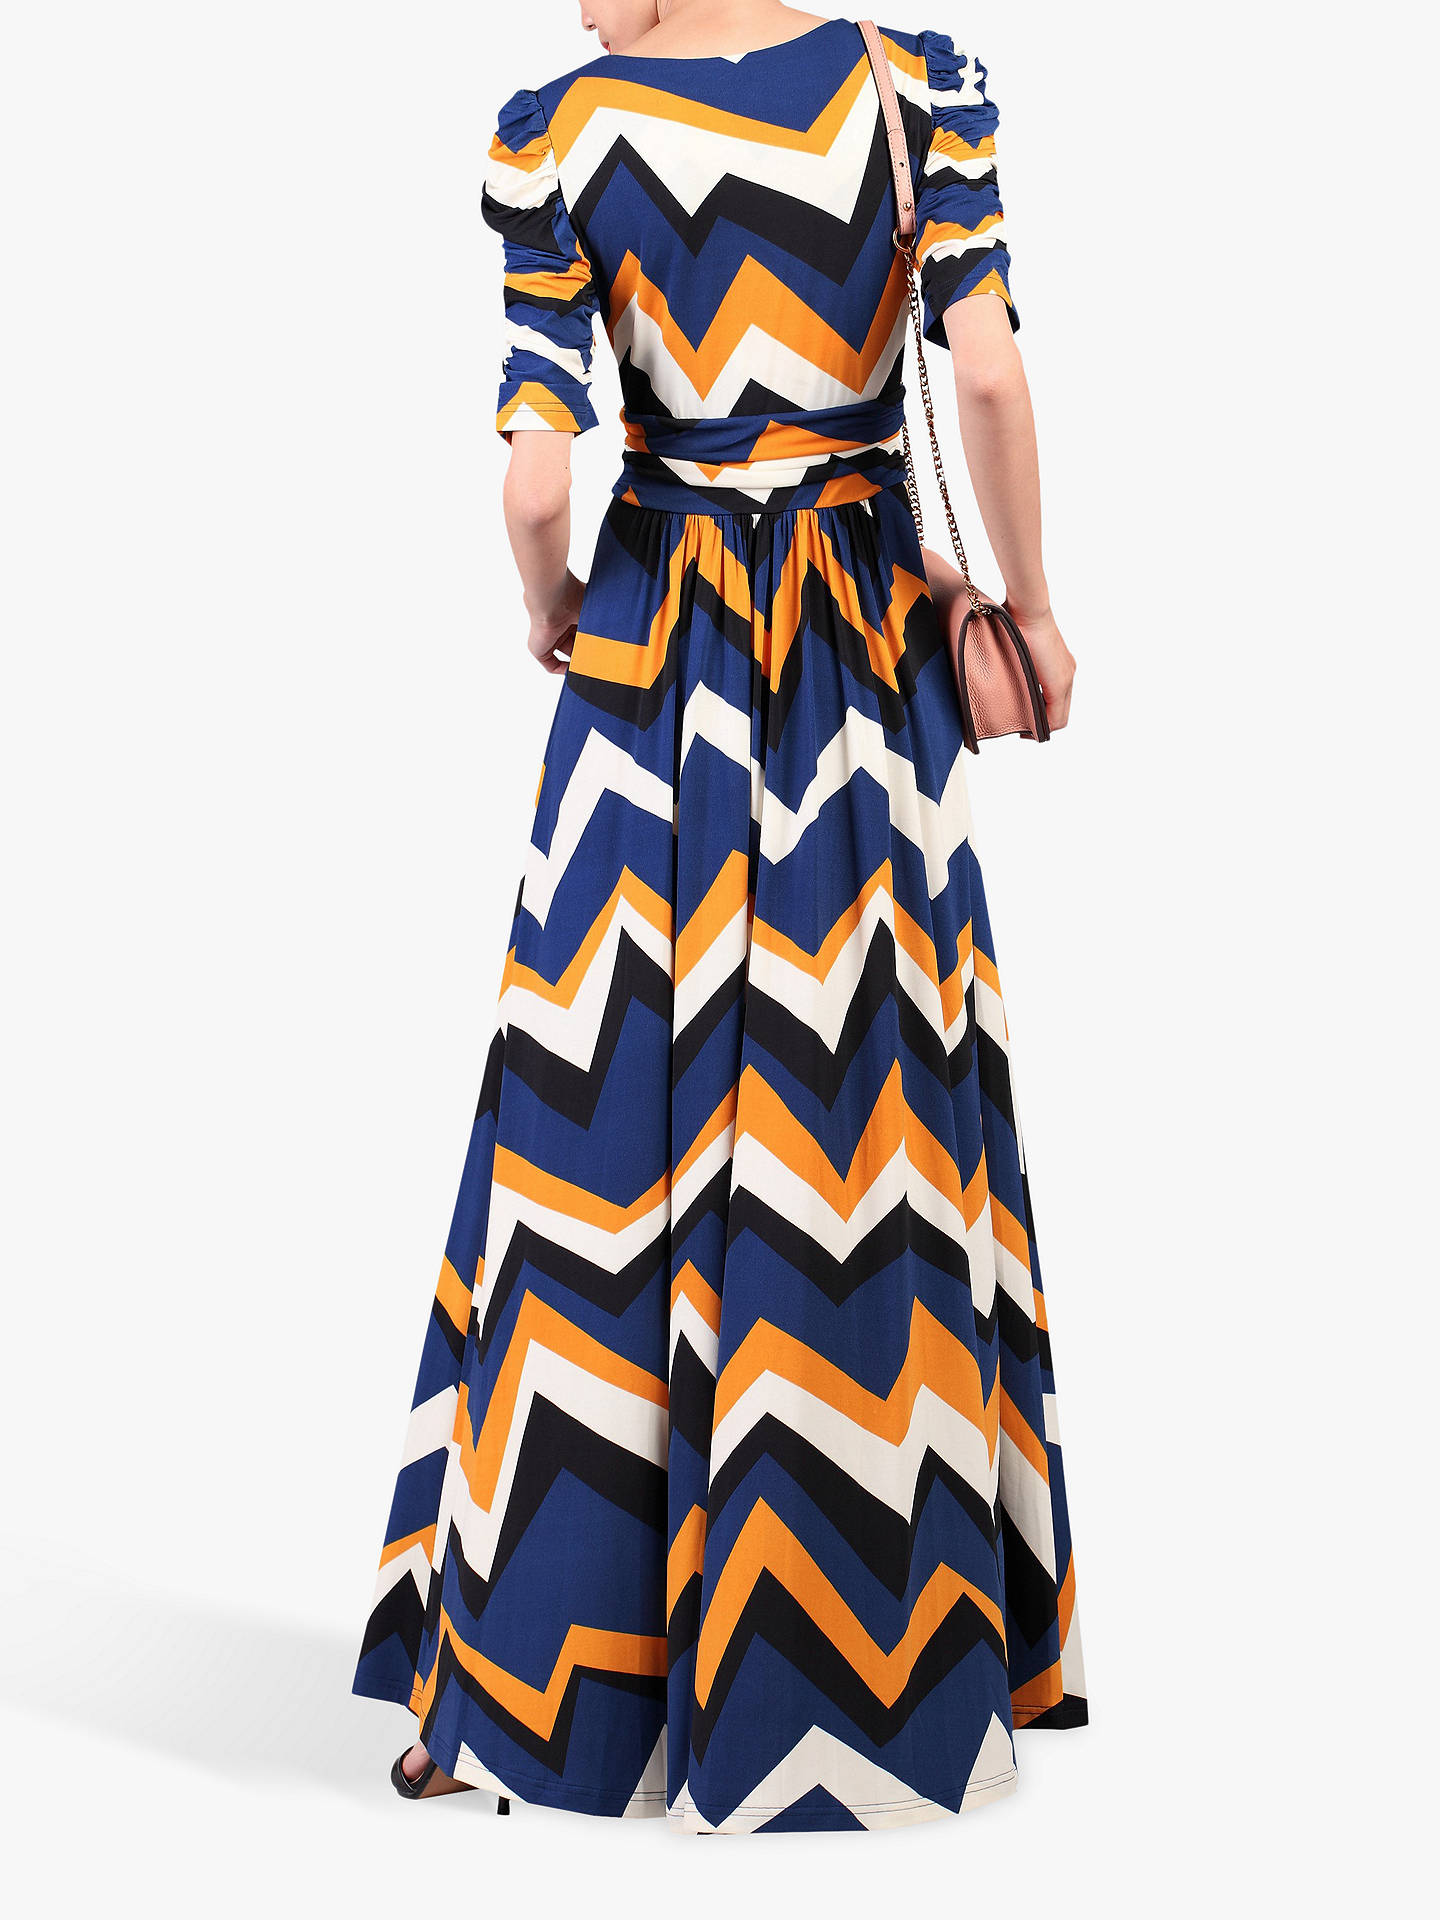 BuyJolie Moi Geometric Print Ruched Sleeve Maxi Dress, Blue Wave, 8 Online at johnlewis.com